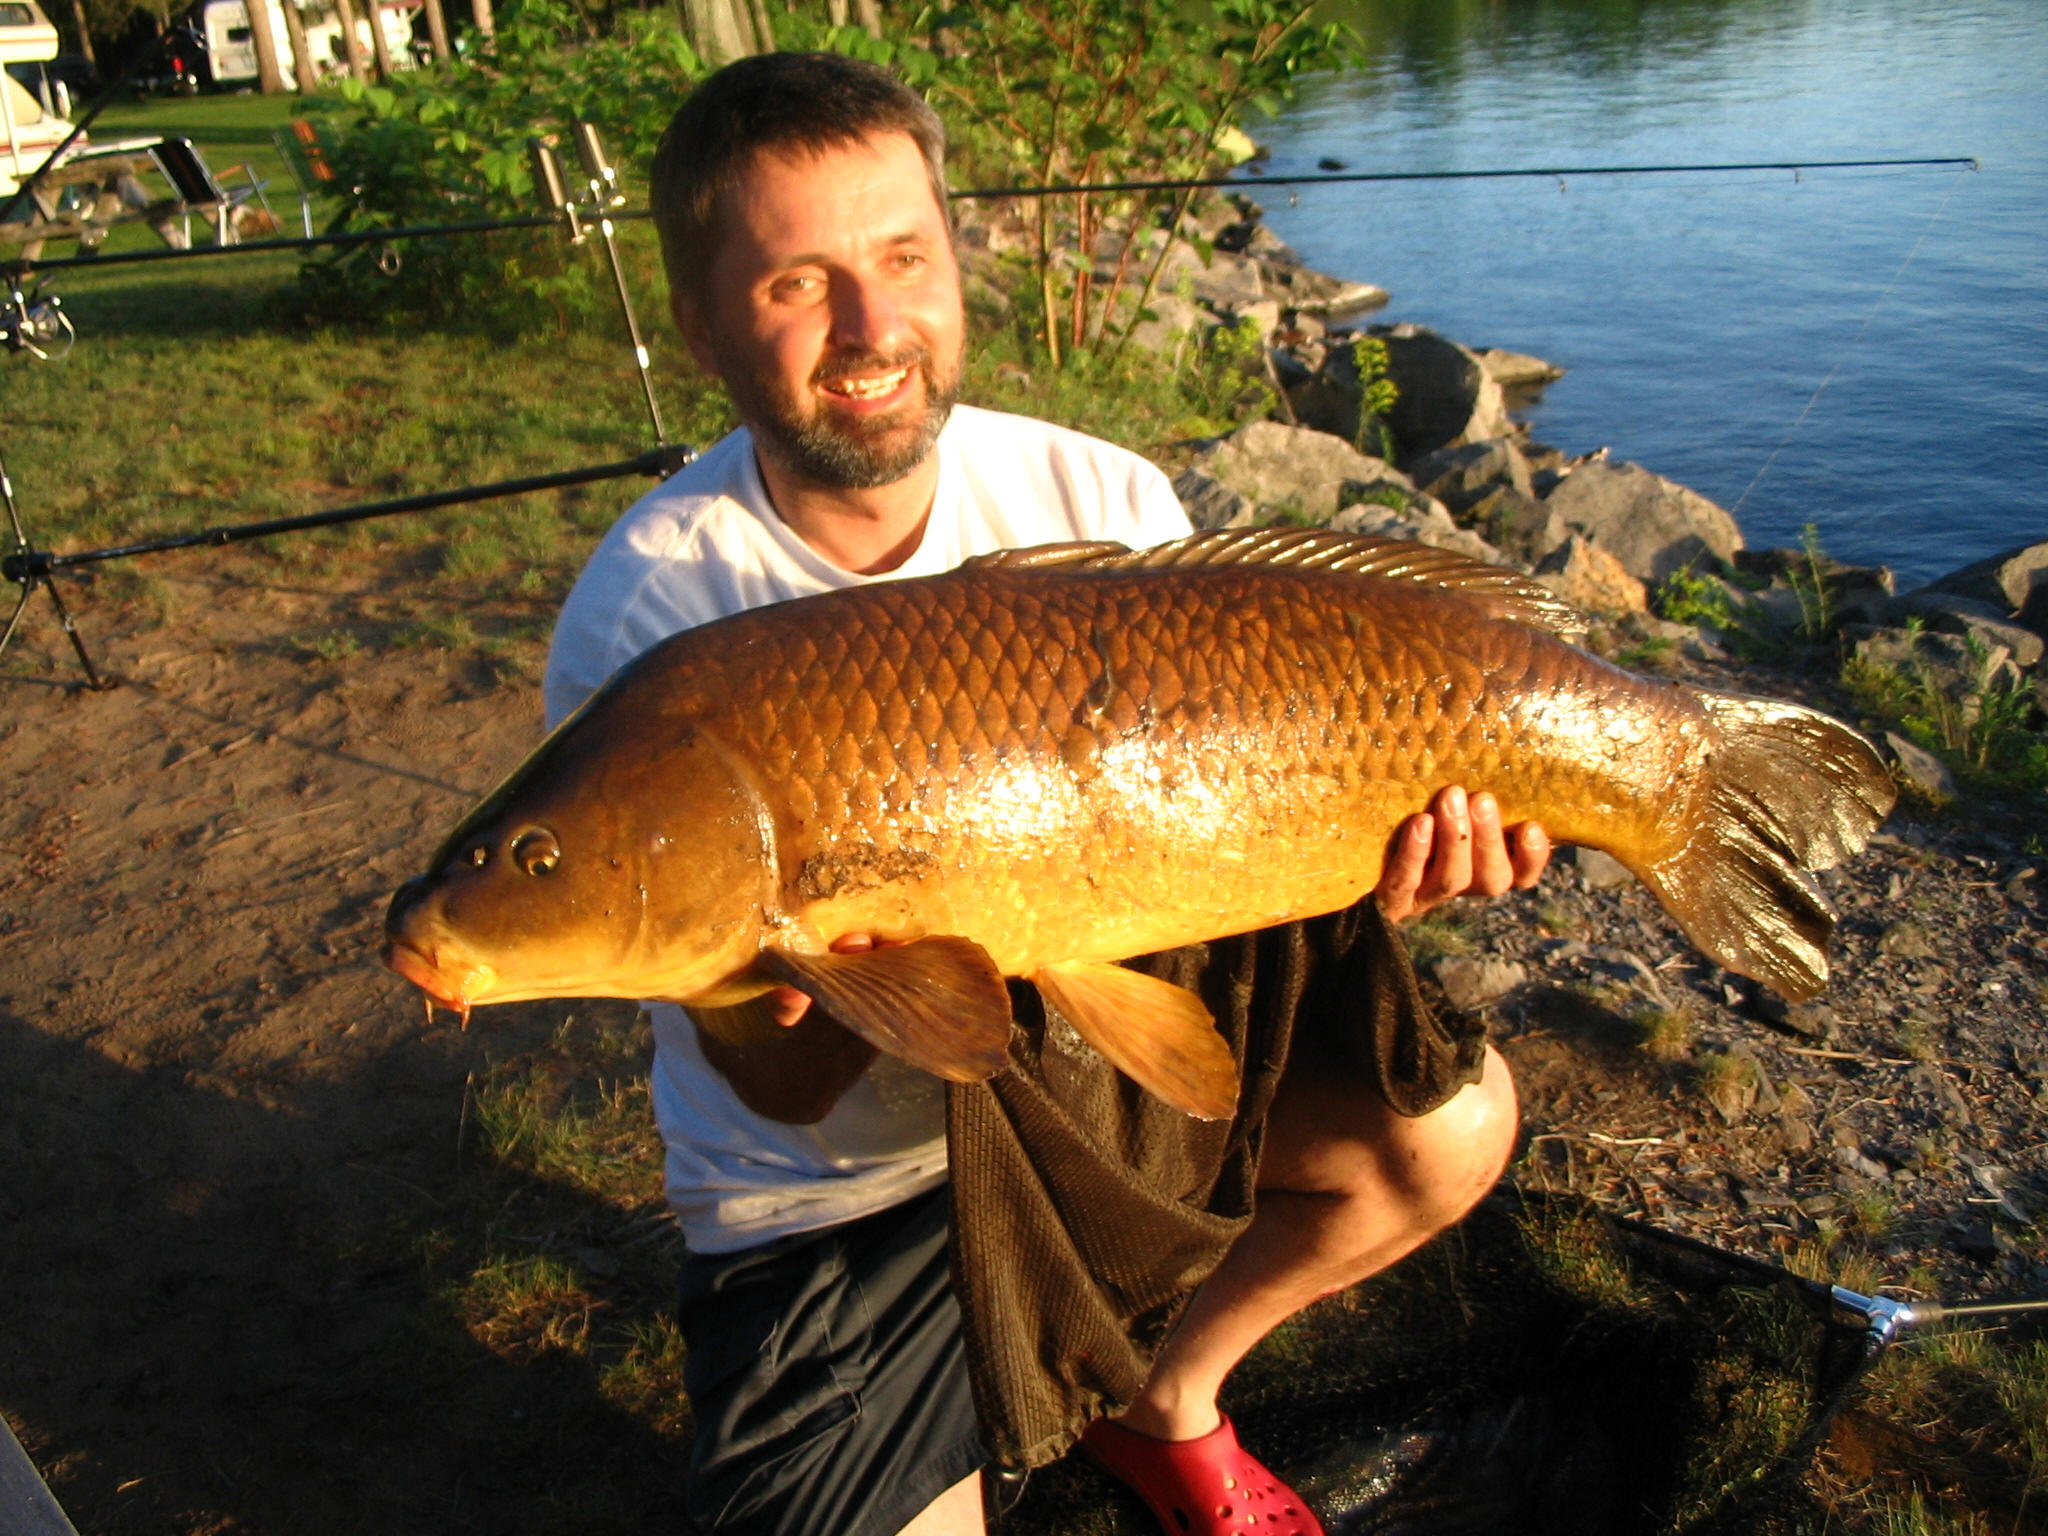 Ontario carp fishing how to fish for carp in ontario canada for Carp fish pictures